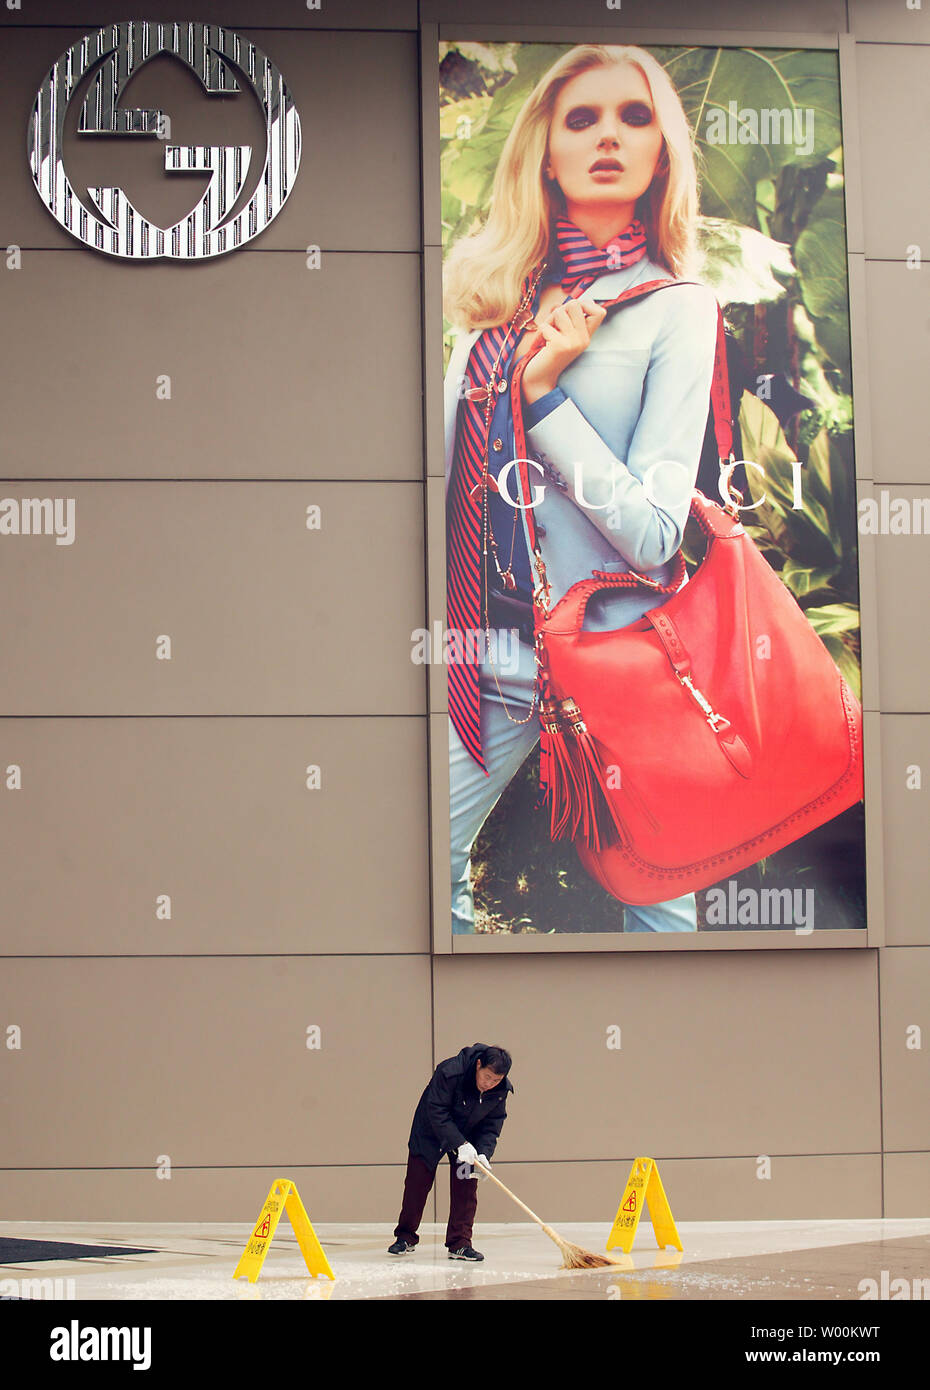 A Chinese worker is dwarfed by a massive Dolce Gabbana showroom boutique in central Beijing February 19, 2009.  In the last decade, most European designers have shifted production to China, including brands like Dolce & Gabbana, Prada, and Armani.   (UPI Photo/Stephen Shaver) - Stock Image